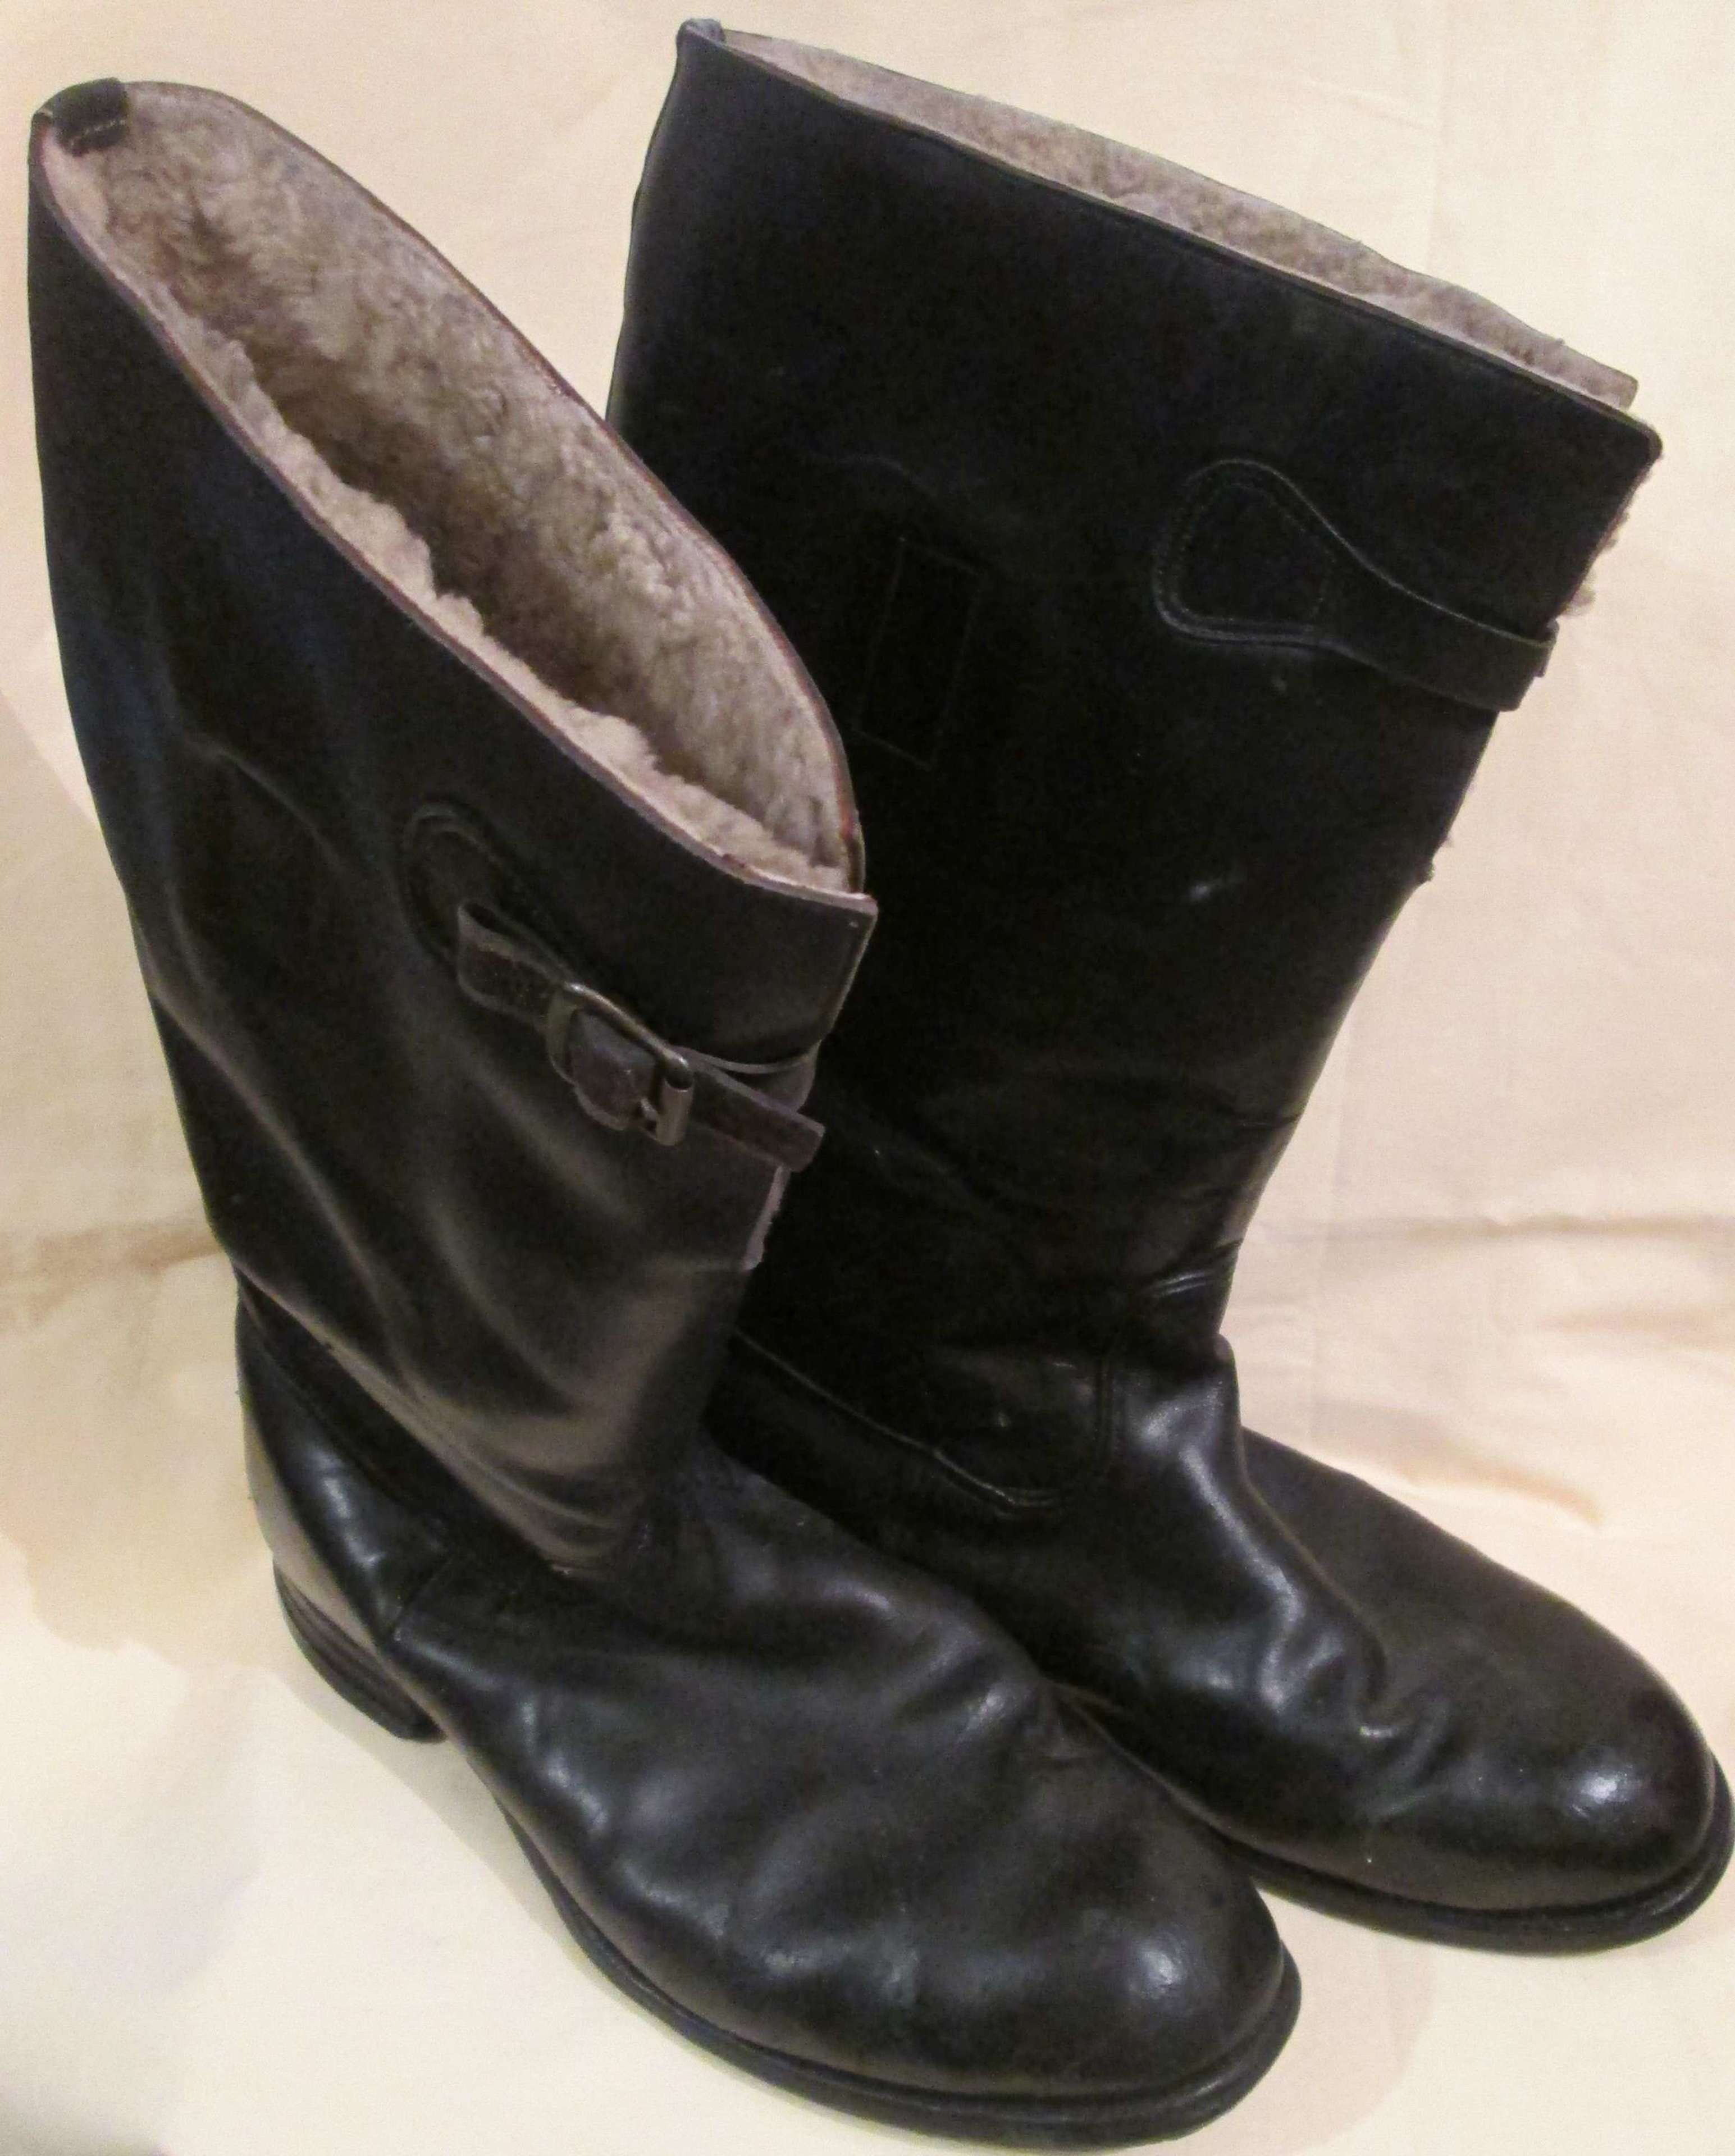 A PAIR OF 1938 DATED RAF 36 PATTERN FLYING BOOTS SIZE 10